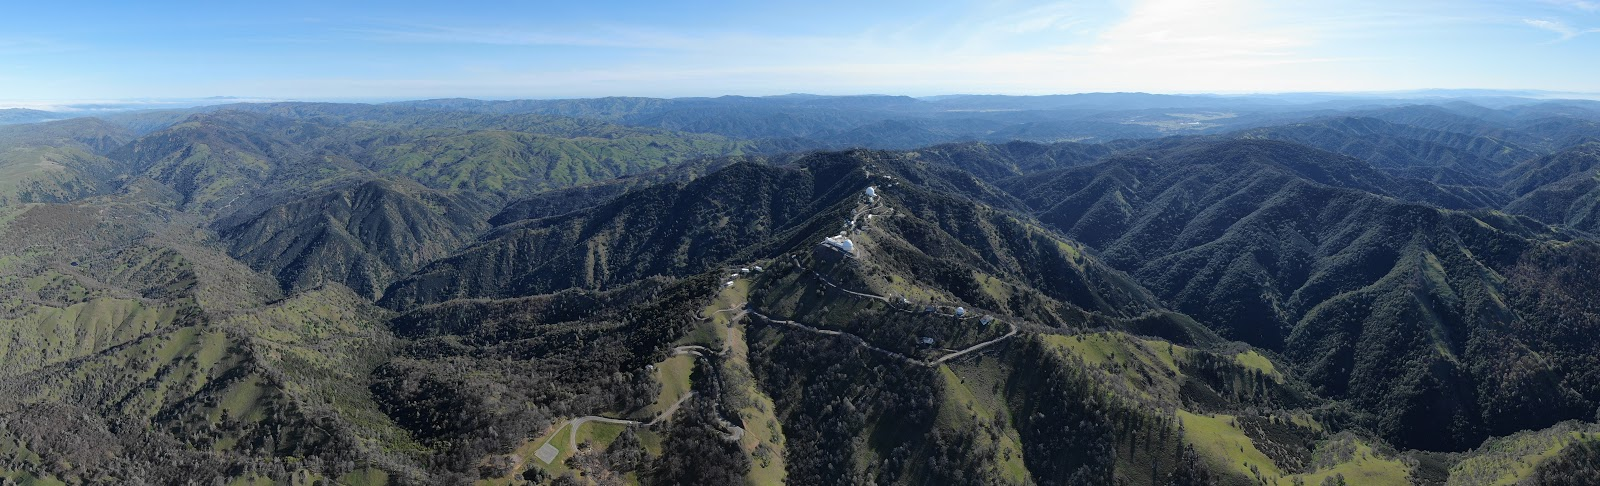 Cycling Mt. Hamilton - Lick Observatory aerial drone photo of observatories and road